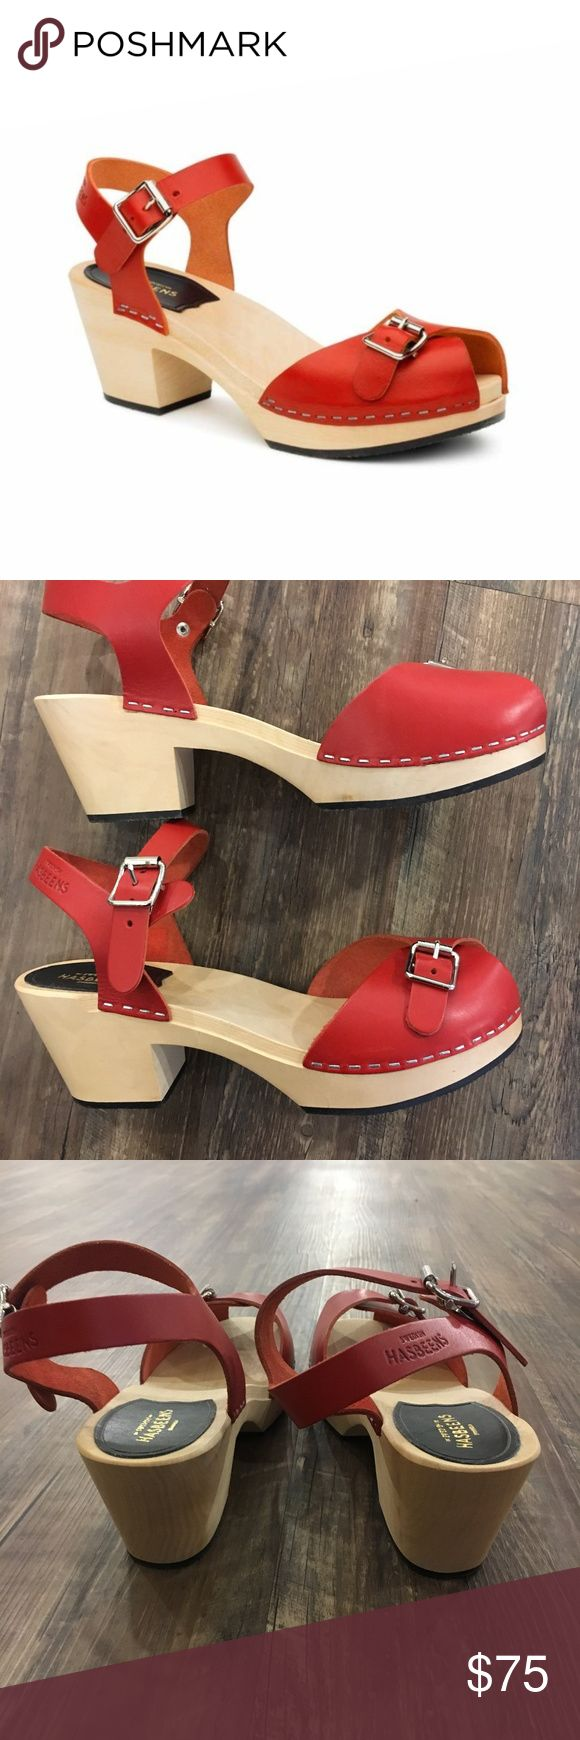 Swedish Hasbeens Pia High in Red Heel is 7 cm high (2.8 inches) Lime-tree wooden heel with rubber sole Italian natural grain leather, chrome free Swedish Hasbeens Shoes